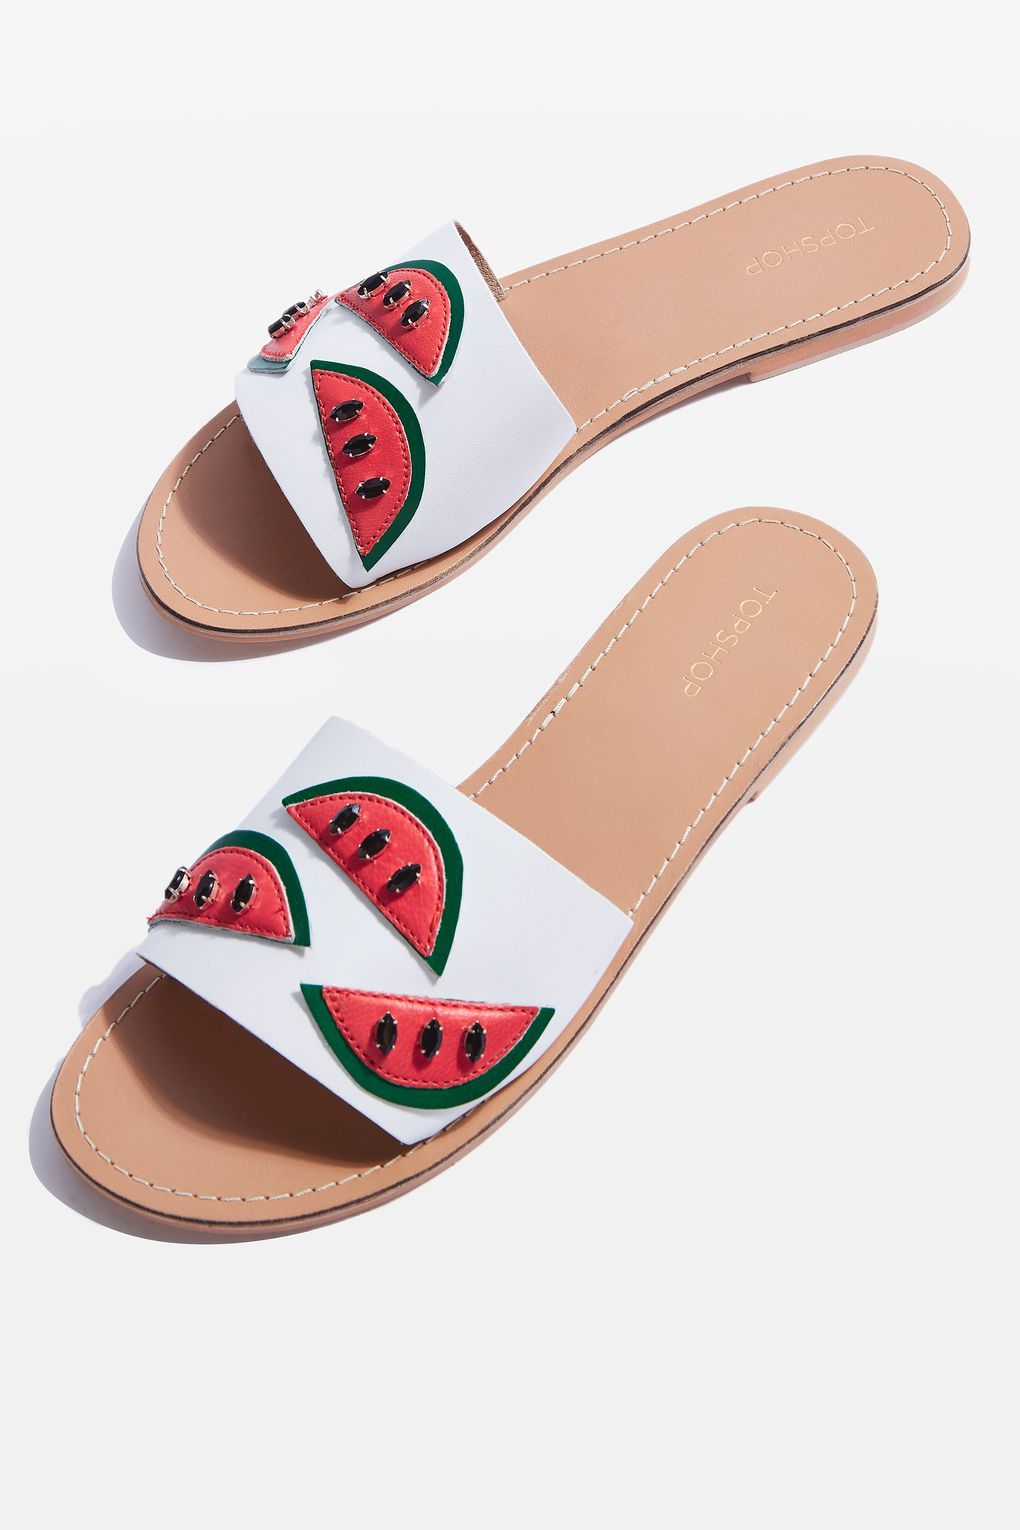 Happy Fruity Sliders Black Friday Shoes Shoes Gorgeous Shoes